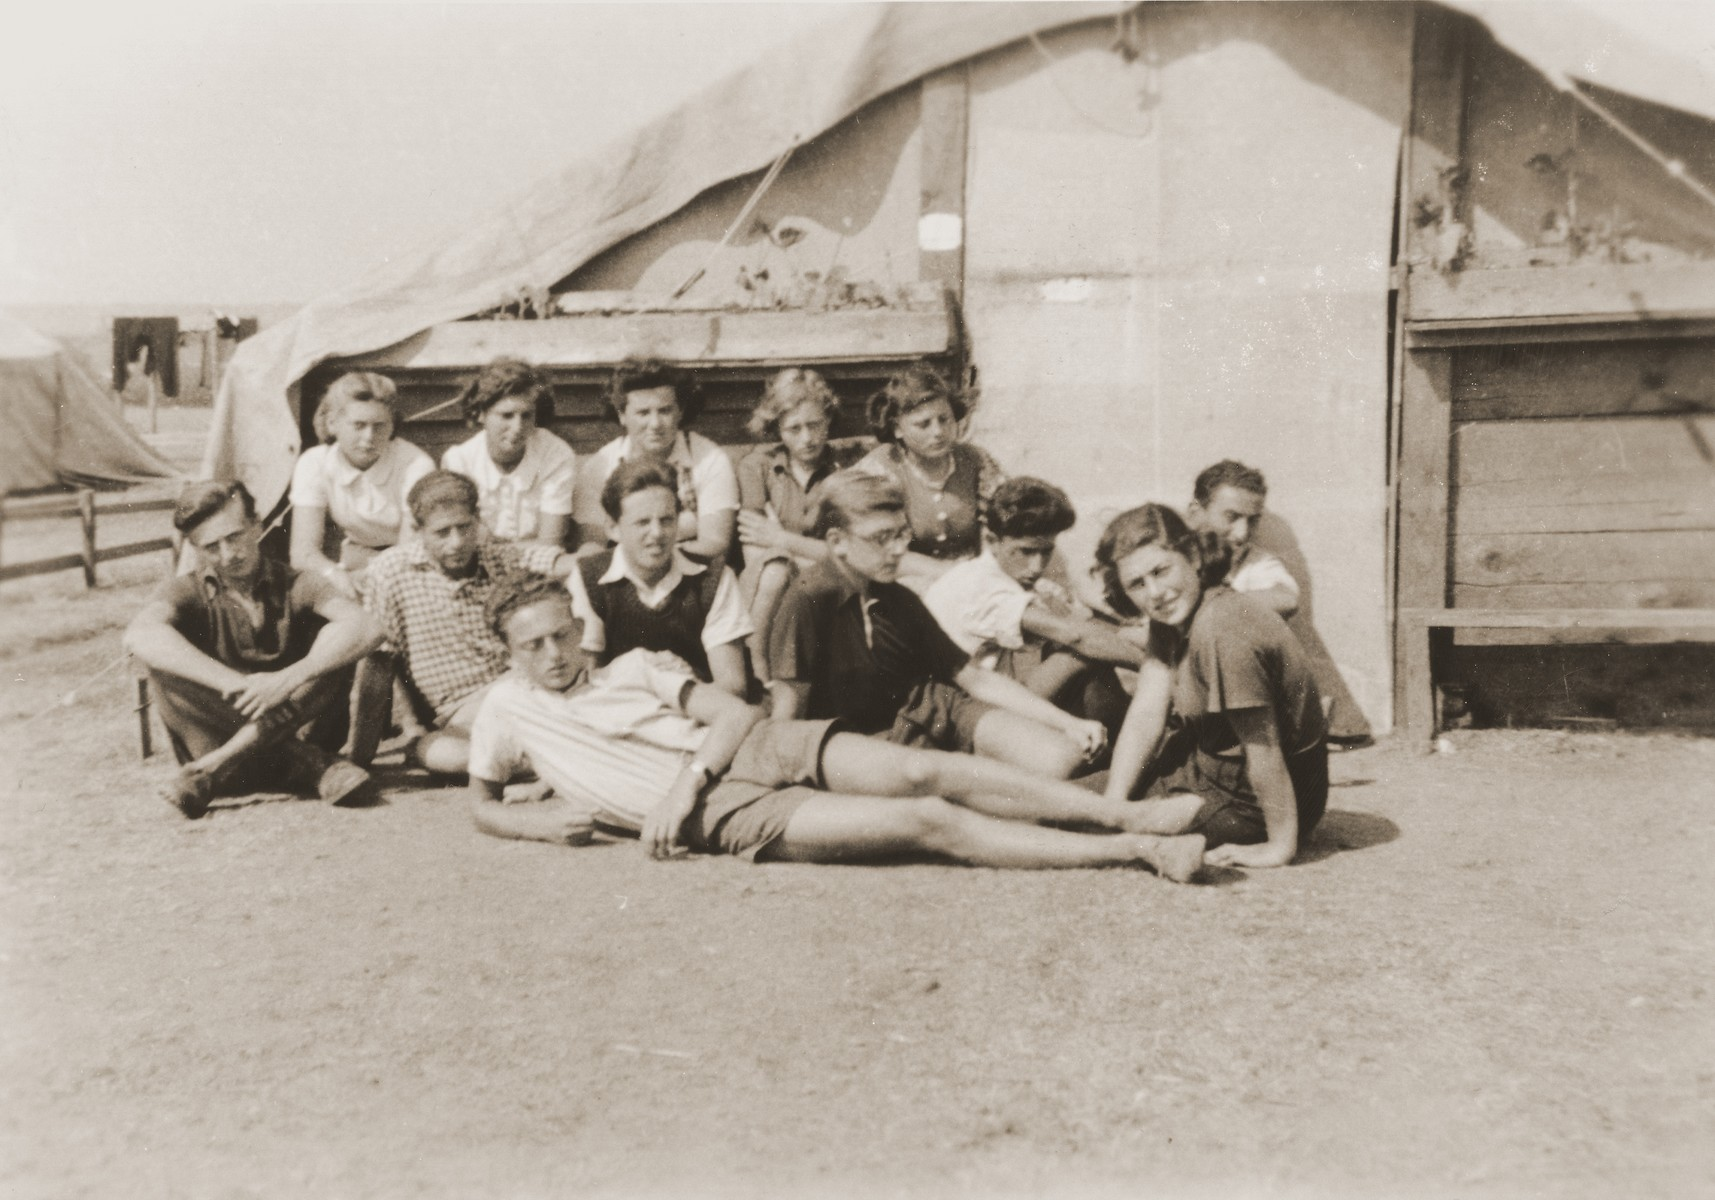 Members of the Hashomer Hatzair in front of their tent in a refugee camp for members of the Kladovo transport.    Erich Nachhaeuser is pictured in the middle, second from the left.  Ruth Weisz is in the back row on the far right and Seppl Baumgartner is seated in front of her.